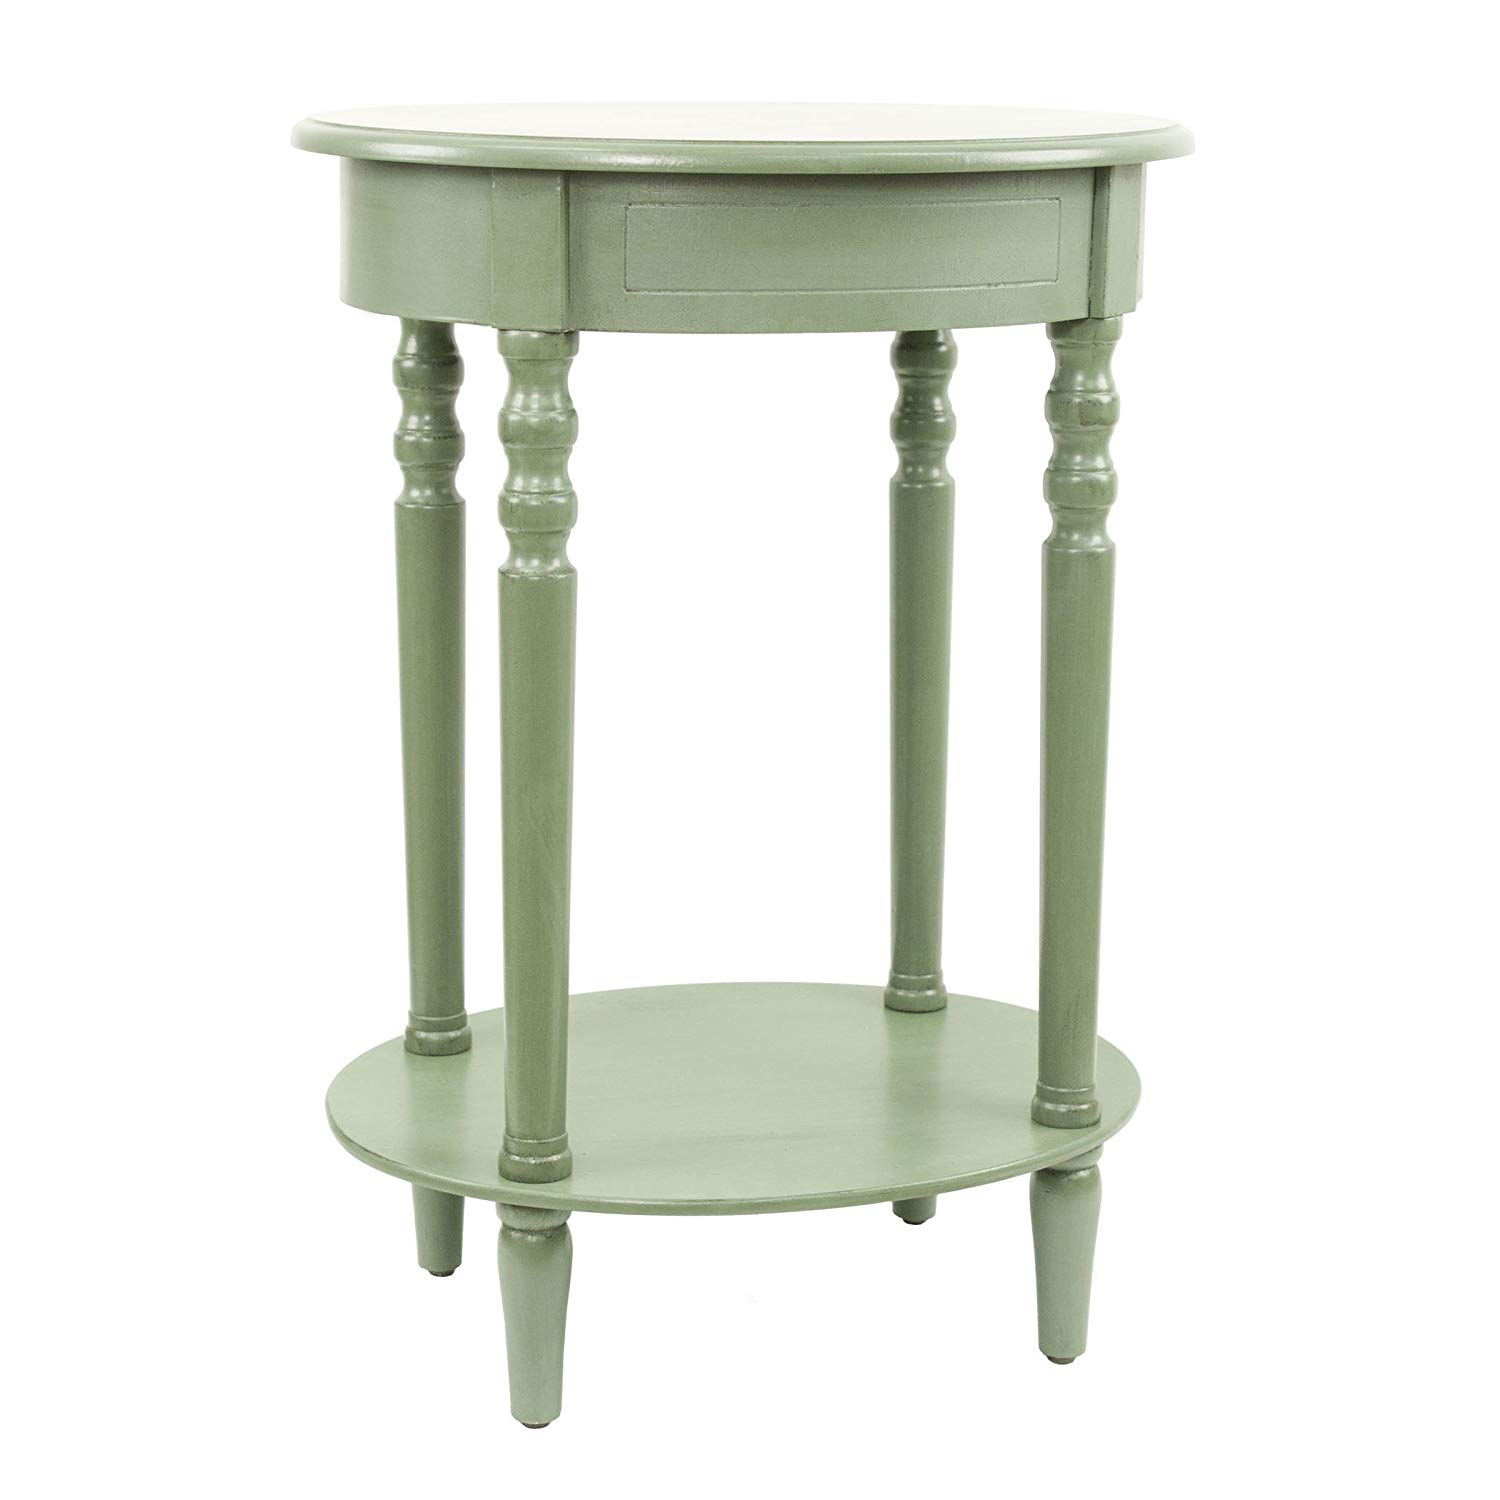 decor therapy simplify oval accent table antique green metal kitchen dining drum throne height hallway with storage contemporary round nautical themed lighting ethan allen windsor